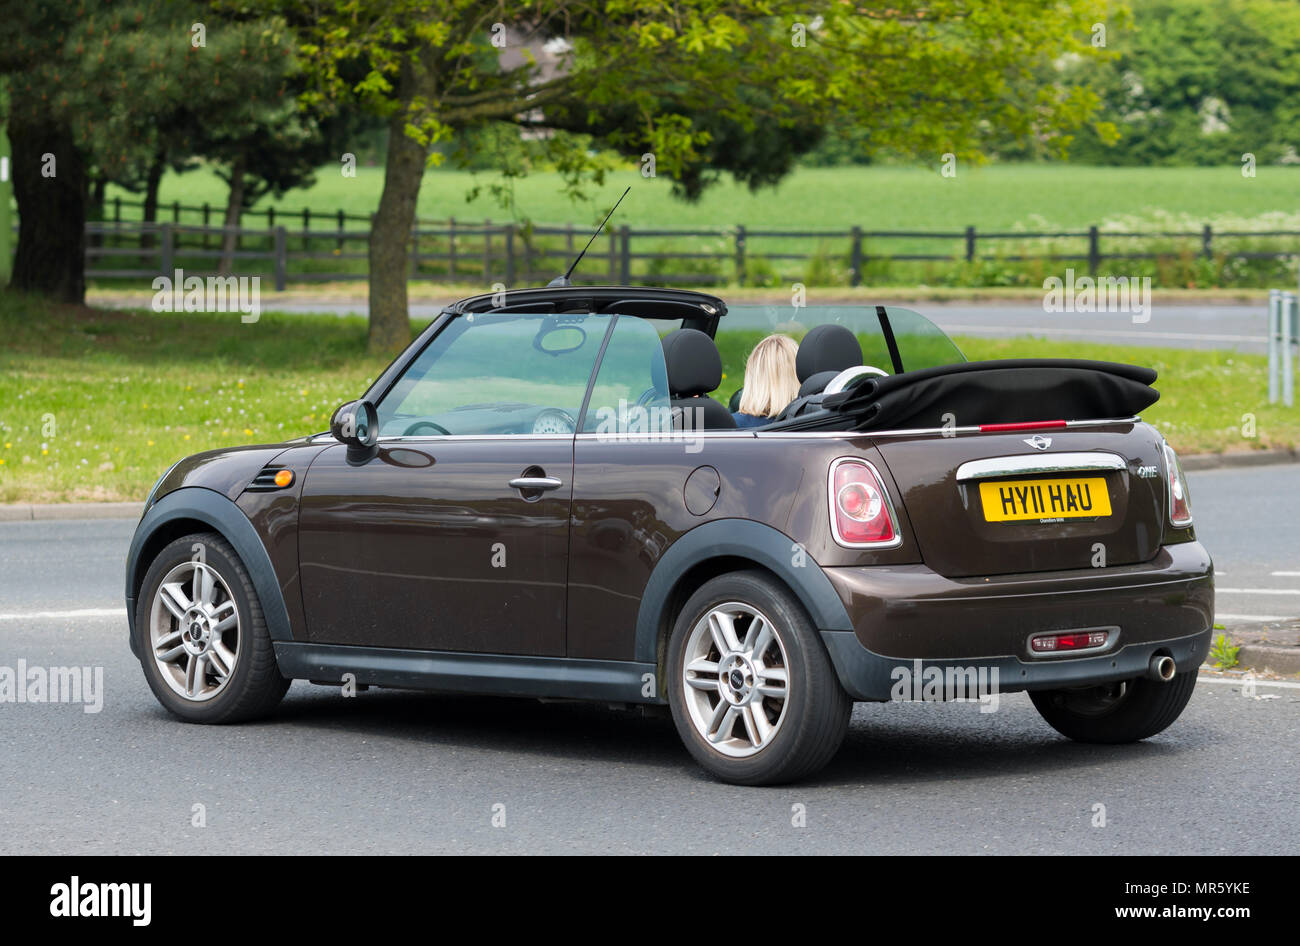 Open top convertible mini car with the top down driven by a woman in Summer the UK. - Stock Image